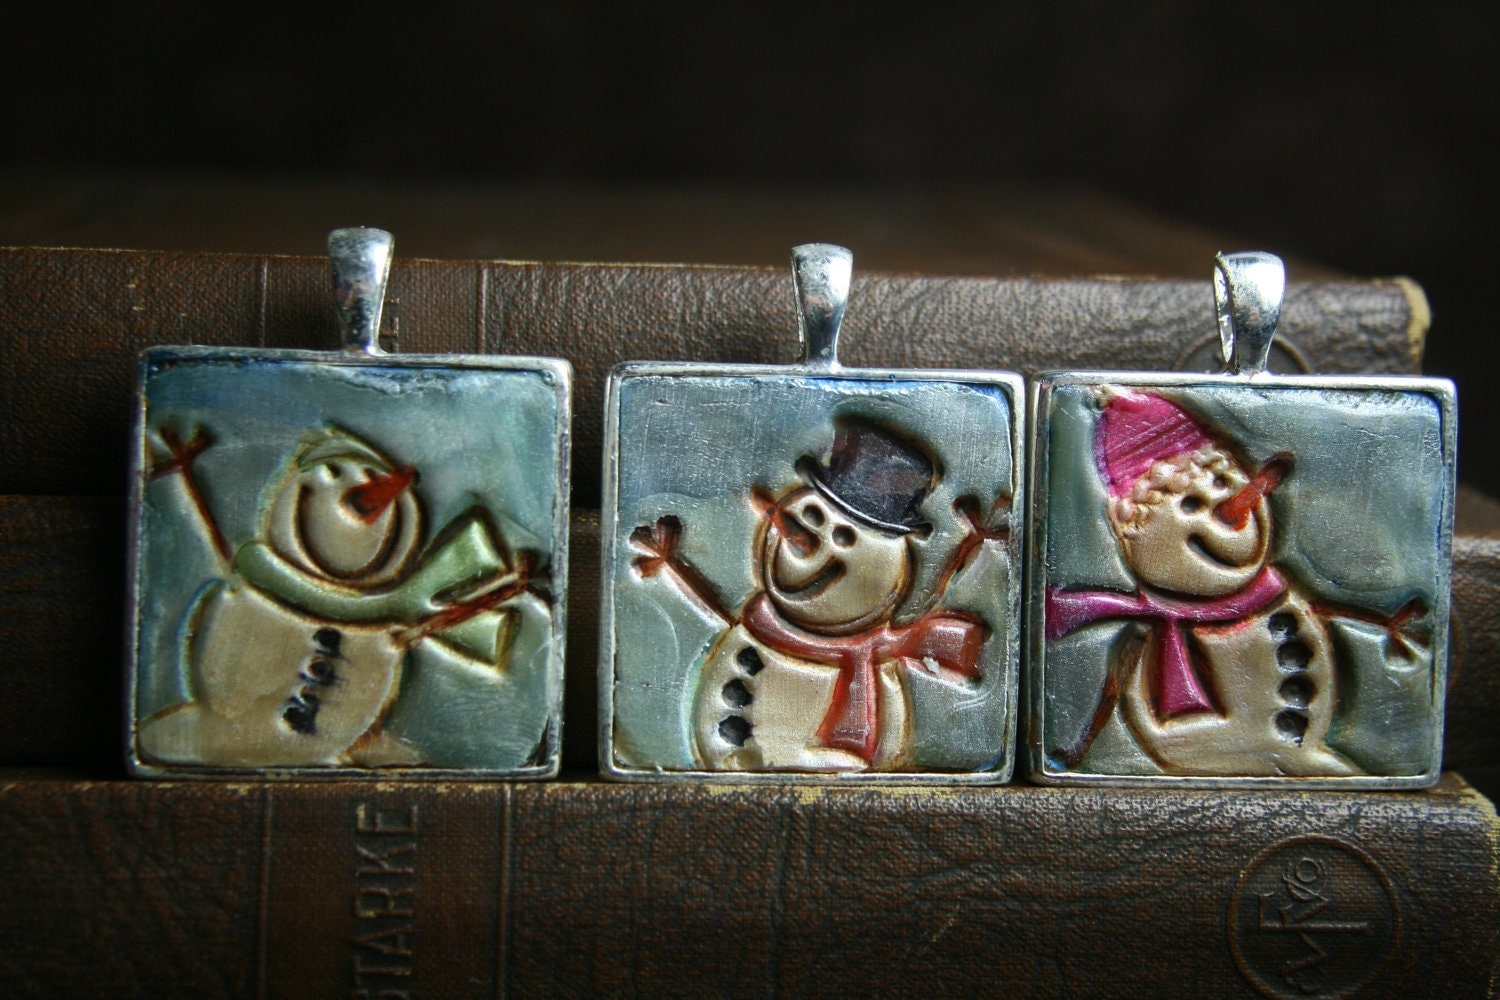 snowfolk - hooray for snow - simple truths ornament or pendant - MADE TO ORDER - awholiday